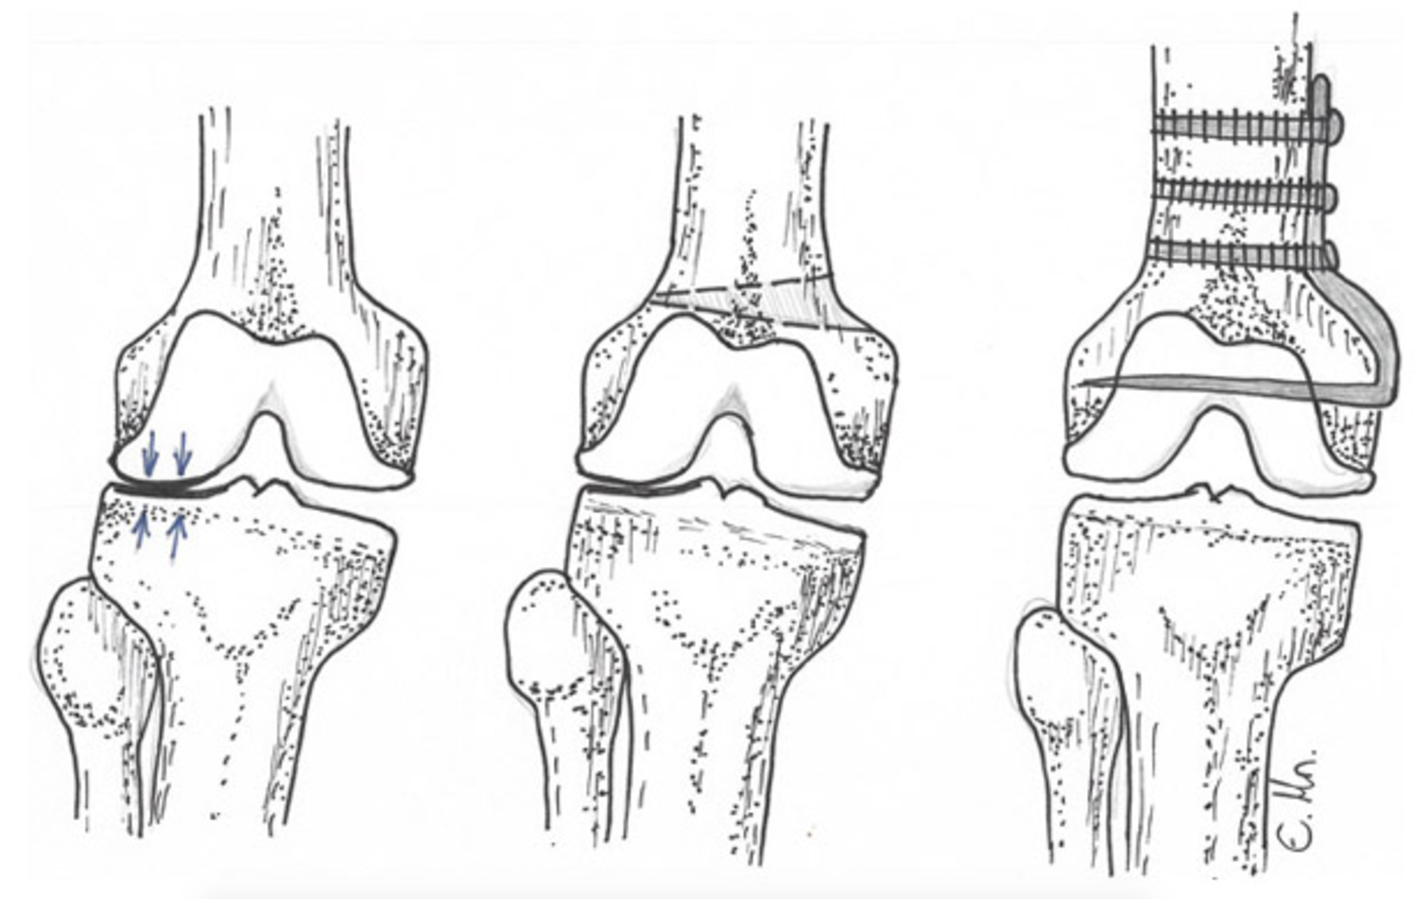 These pictures show before and after a distal femoral osteotomy, where the femur has been refashioned above the knee joint to relieve pressure on the outer (lateral) aspect of the knee.